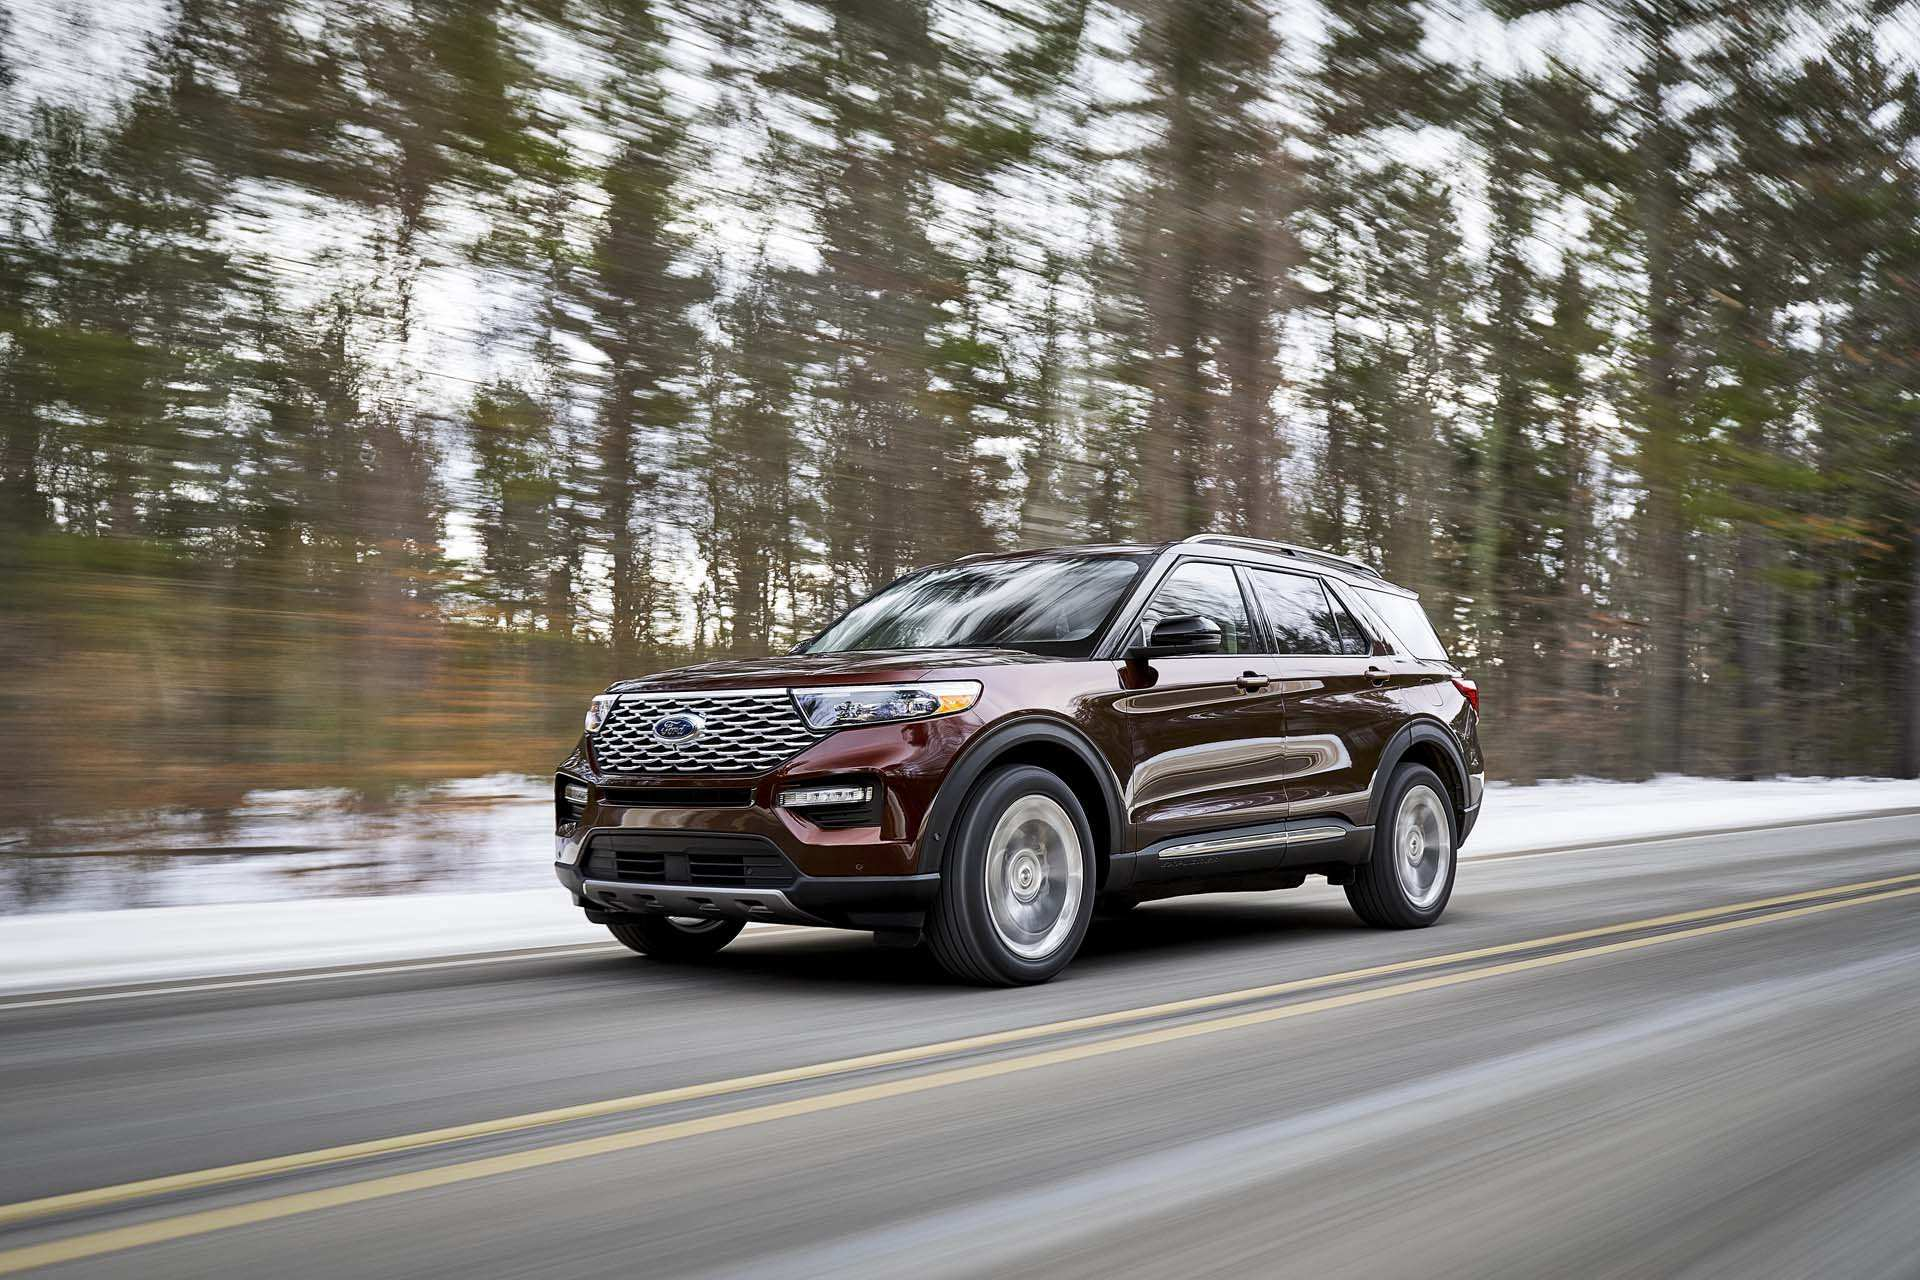 90 The 2020 Ford Explorer Images